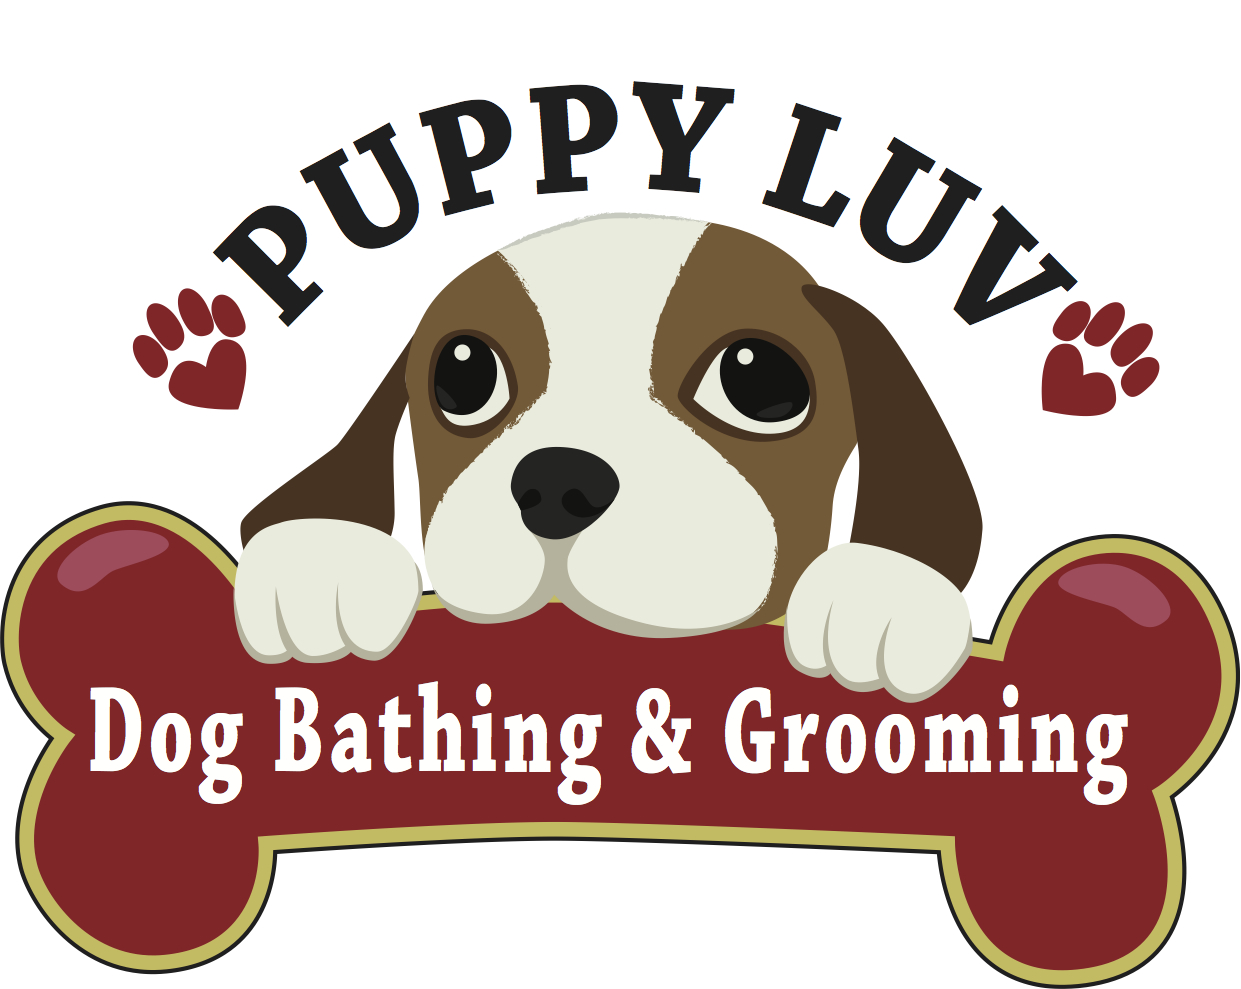 We Offer Regional Treats Hand Crafted Goods And The Perfect Gift For Your Best Friend Puppy Luv Dog Boutique Has A Wonderful Selection Of Doggy